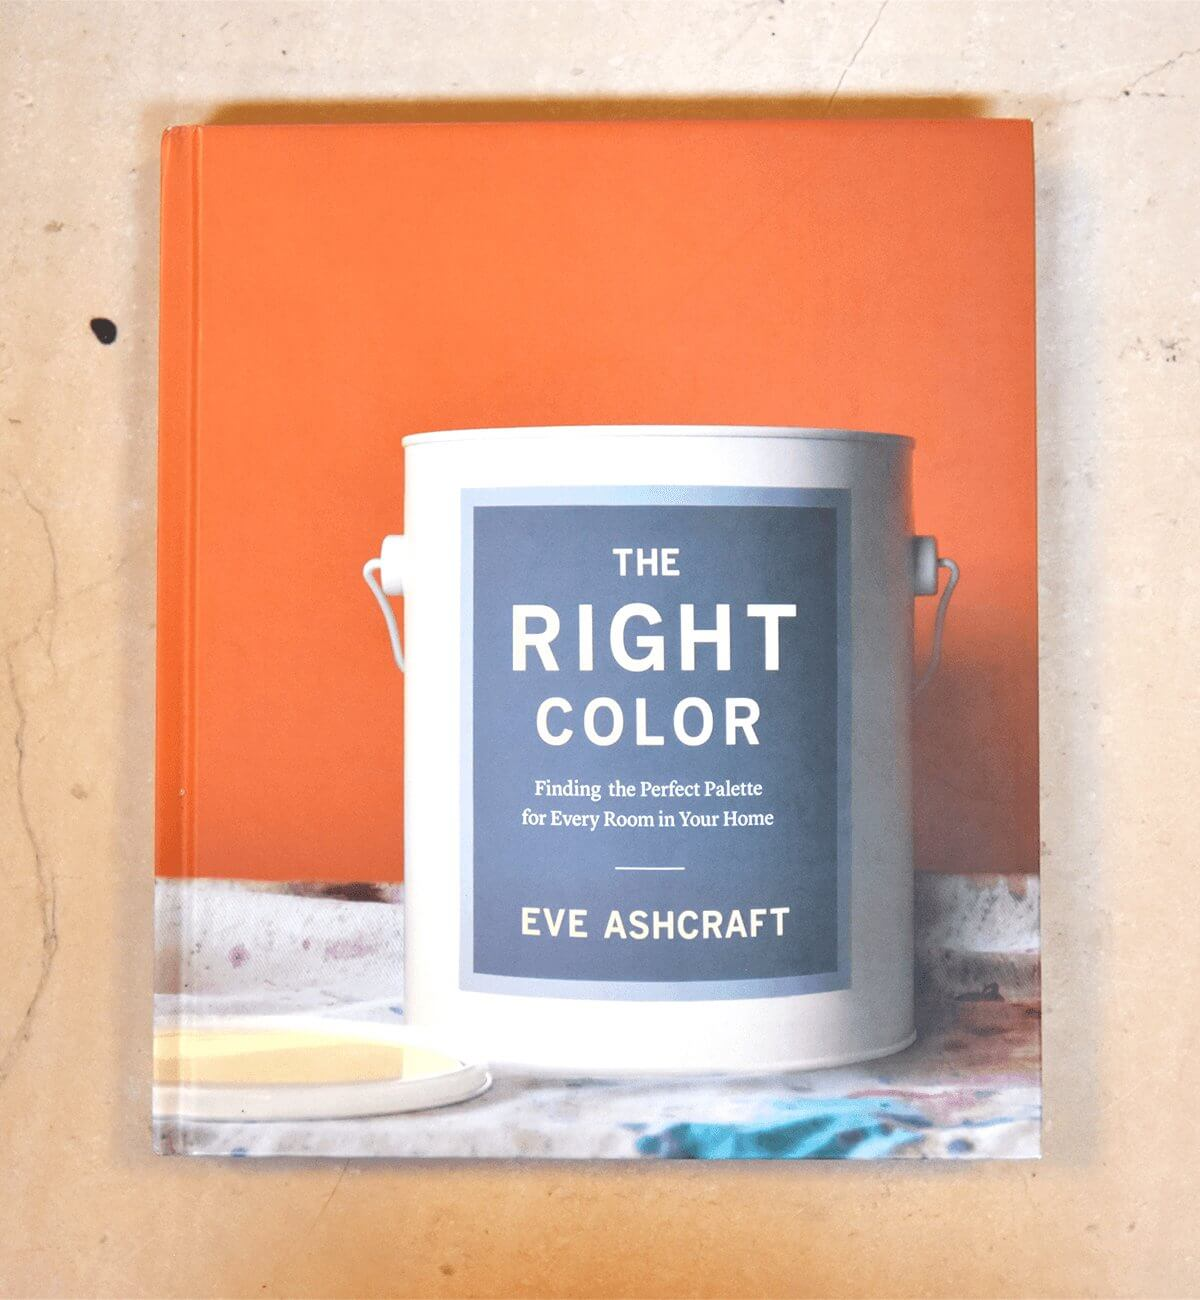 The right color eve ashcraft